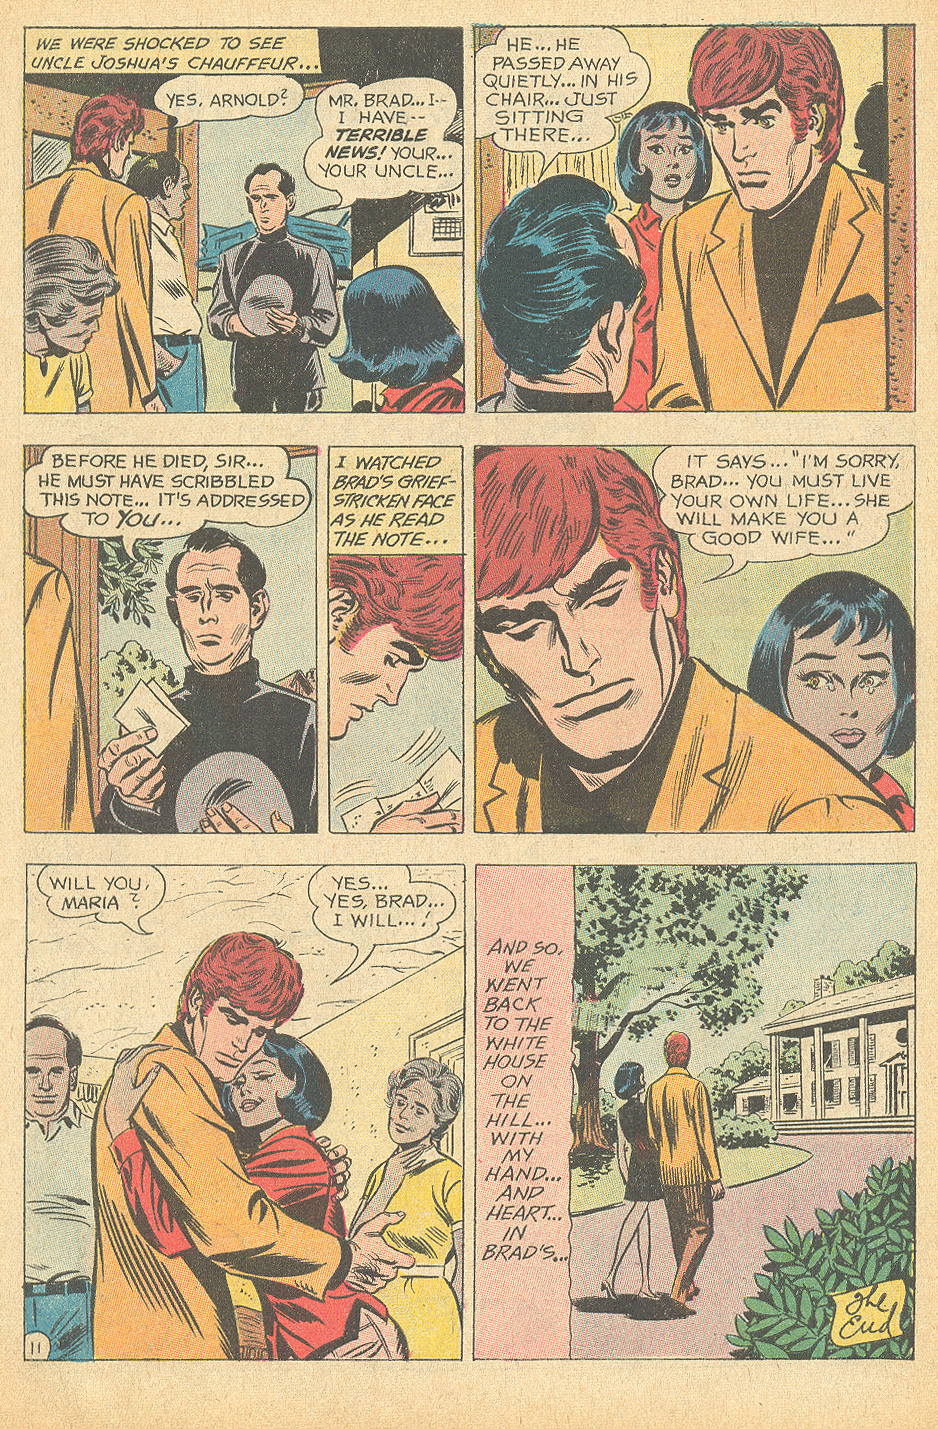 Interracial relationship romance West Side Story comic book